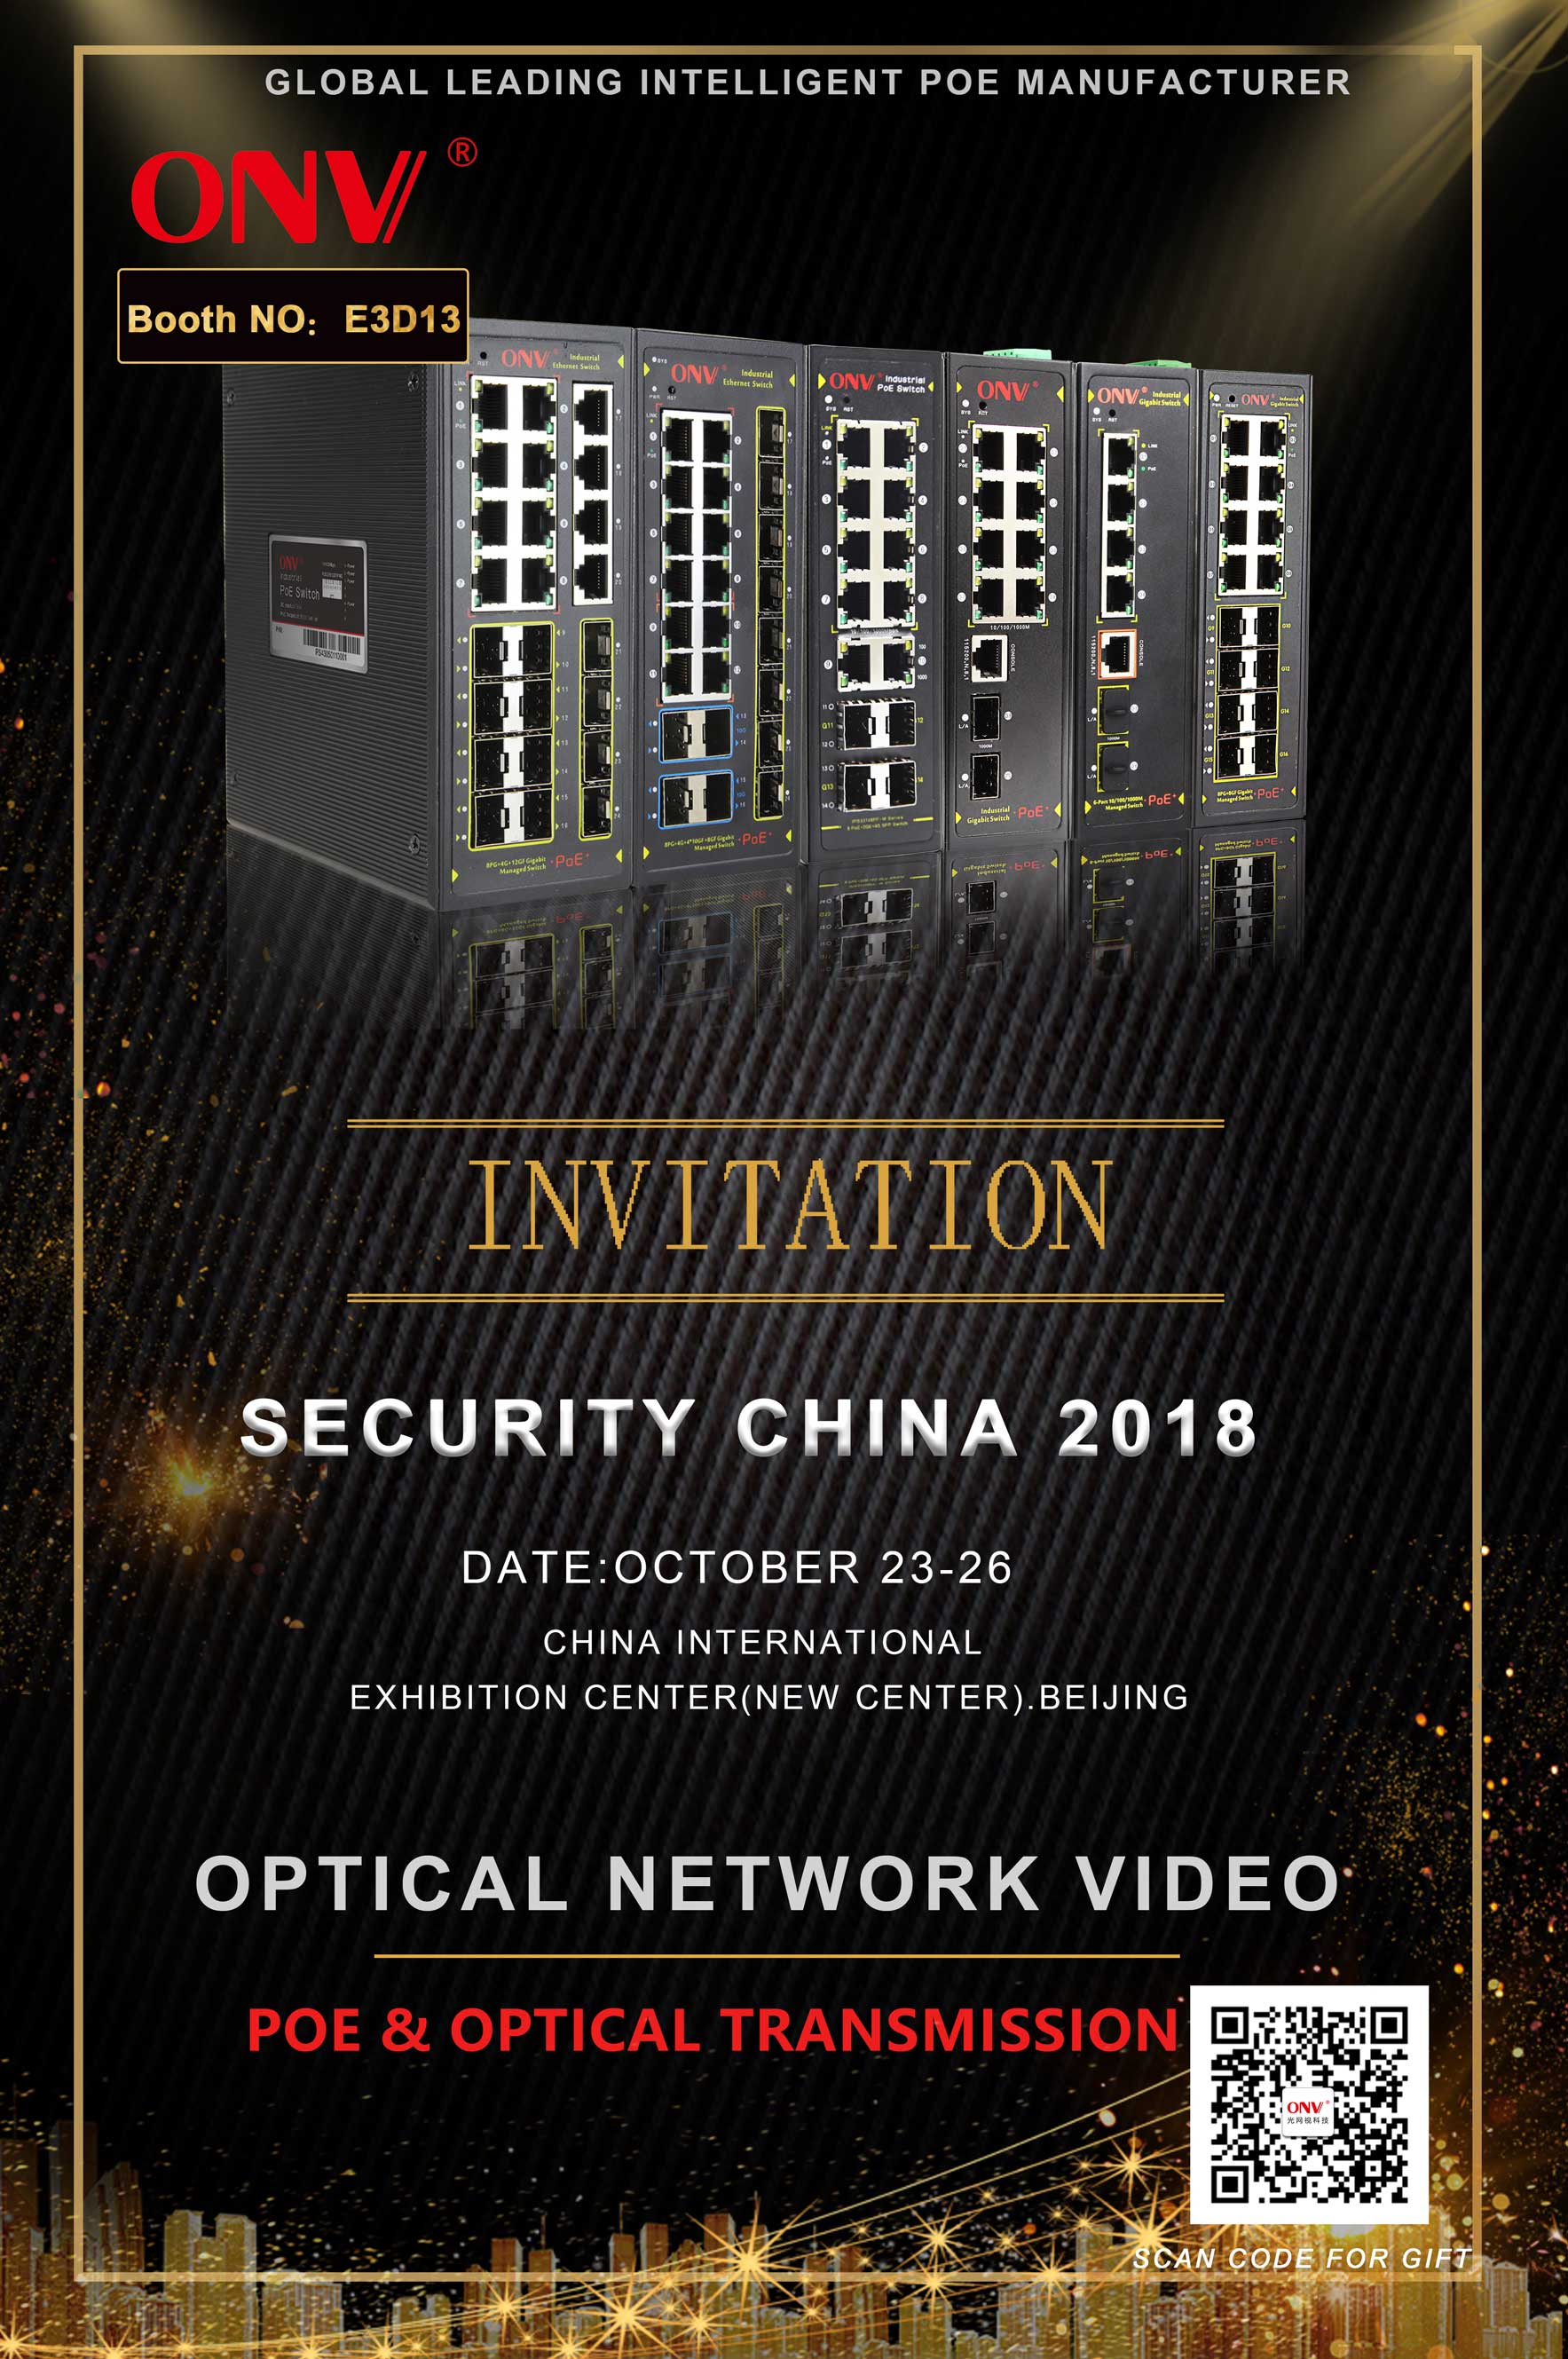 ONV PoE switch at Security China CPSE, PoE switch